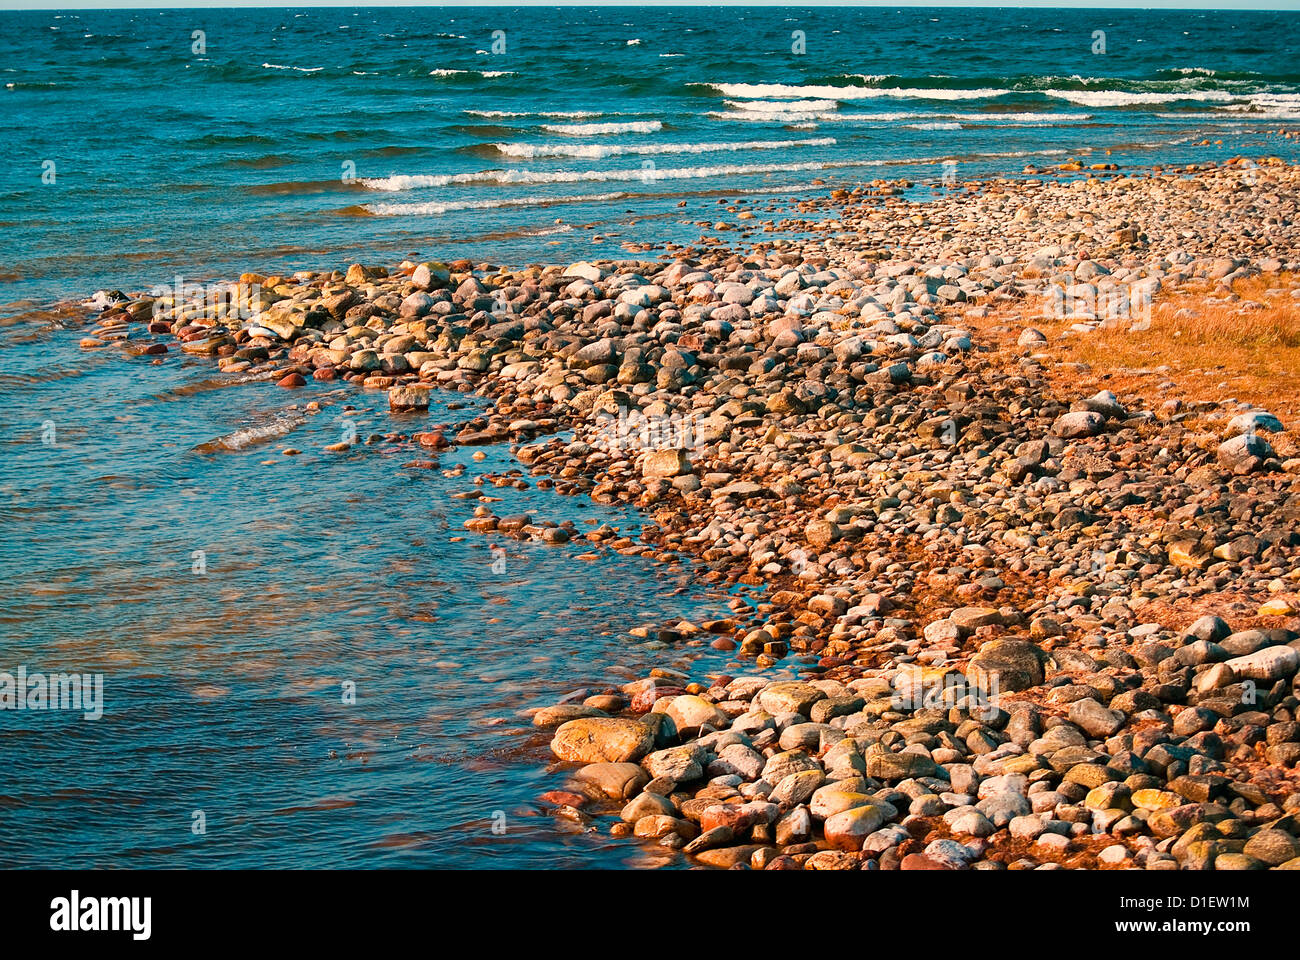 Coastline with waves lapping up against stony beach - Stock Image